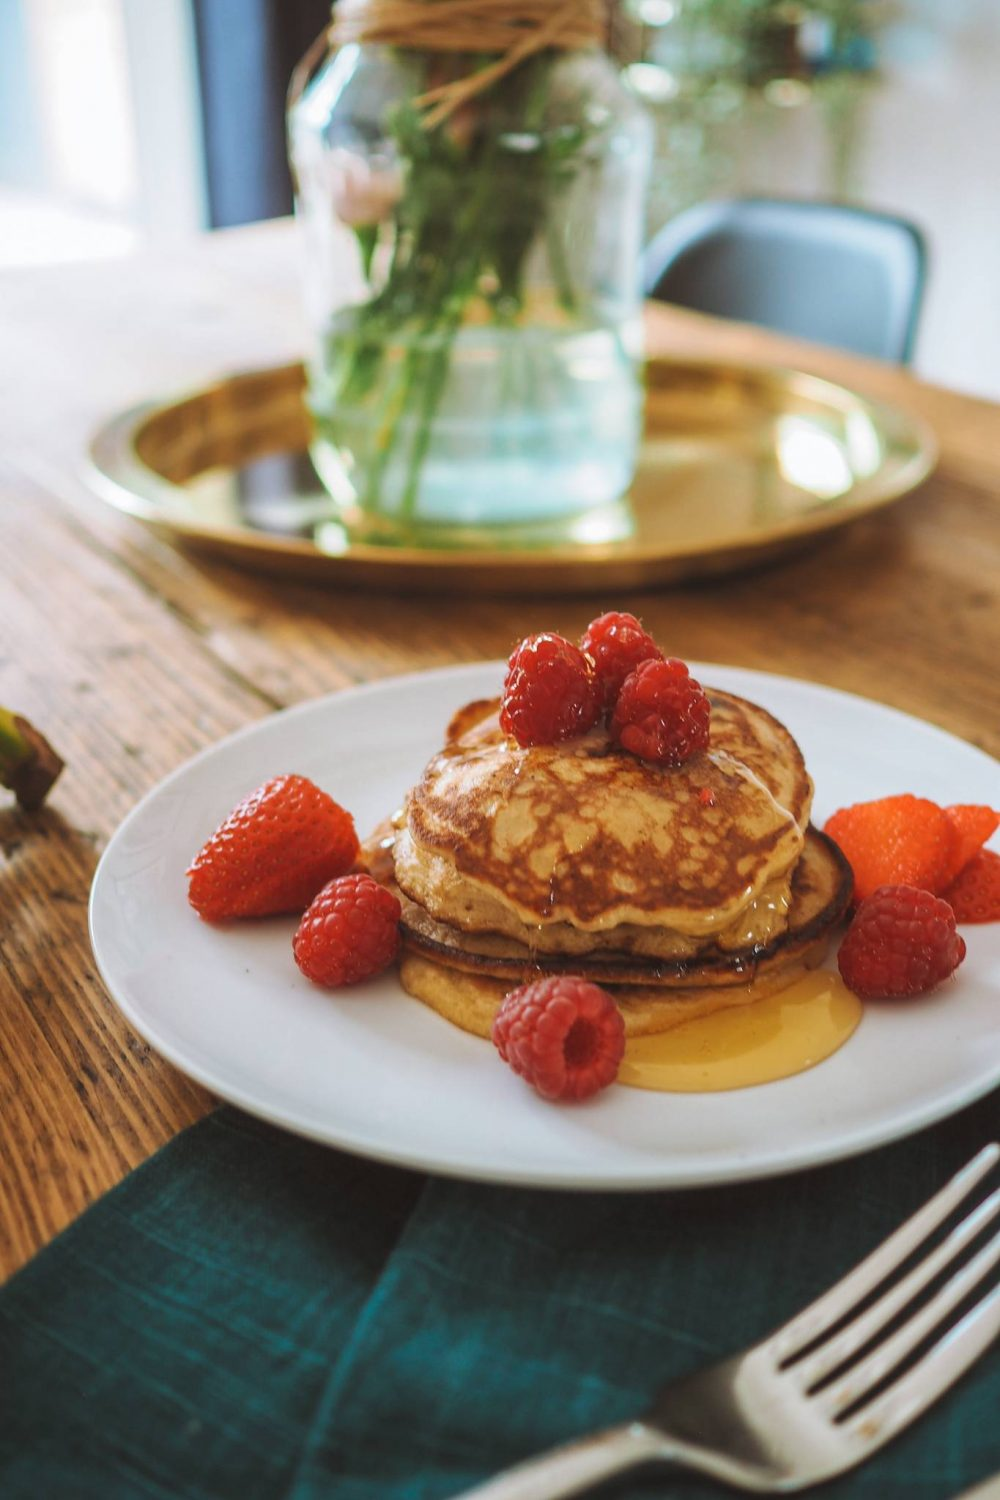 Banana pancakes topped with raspberries and honey